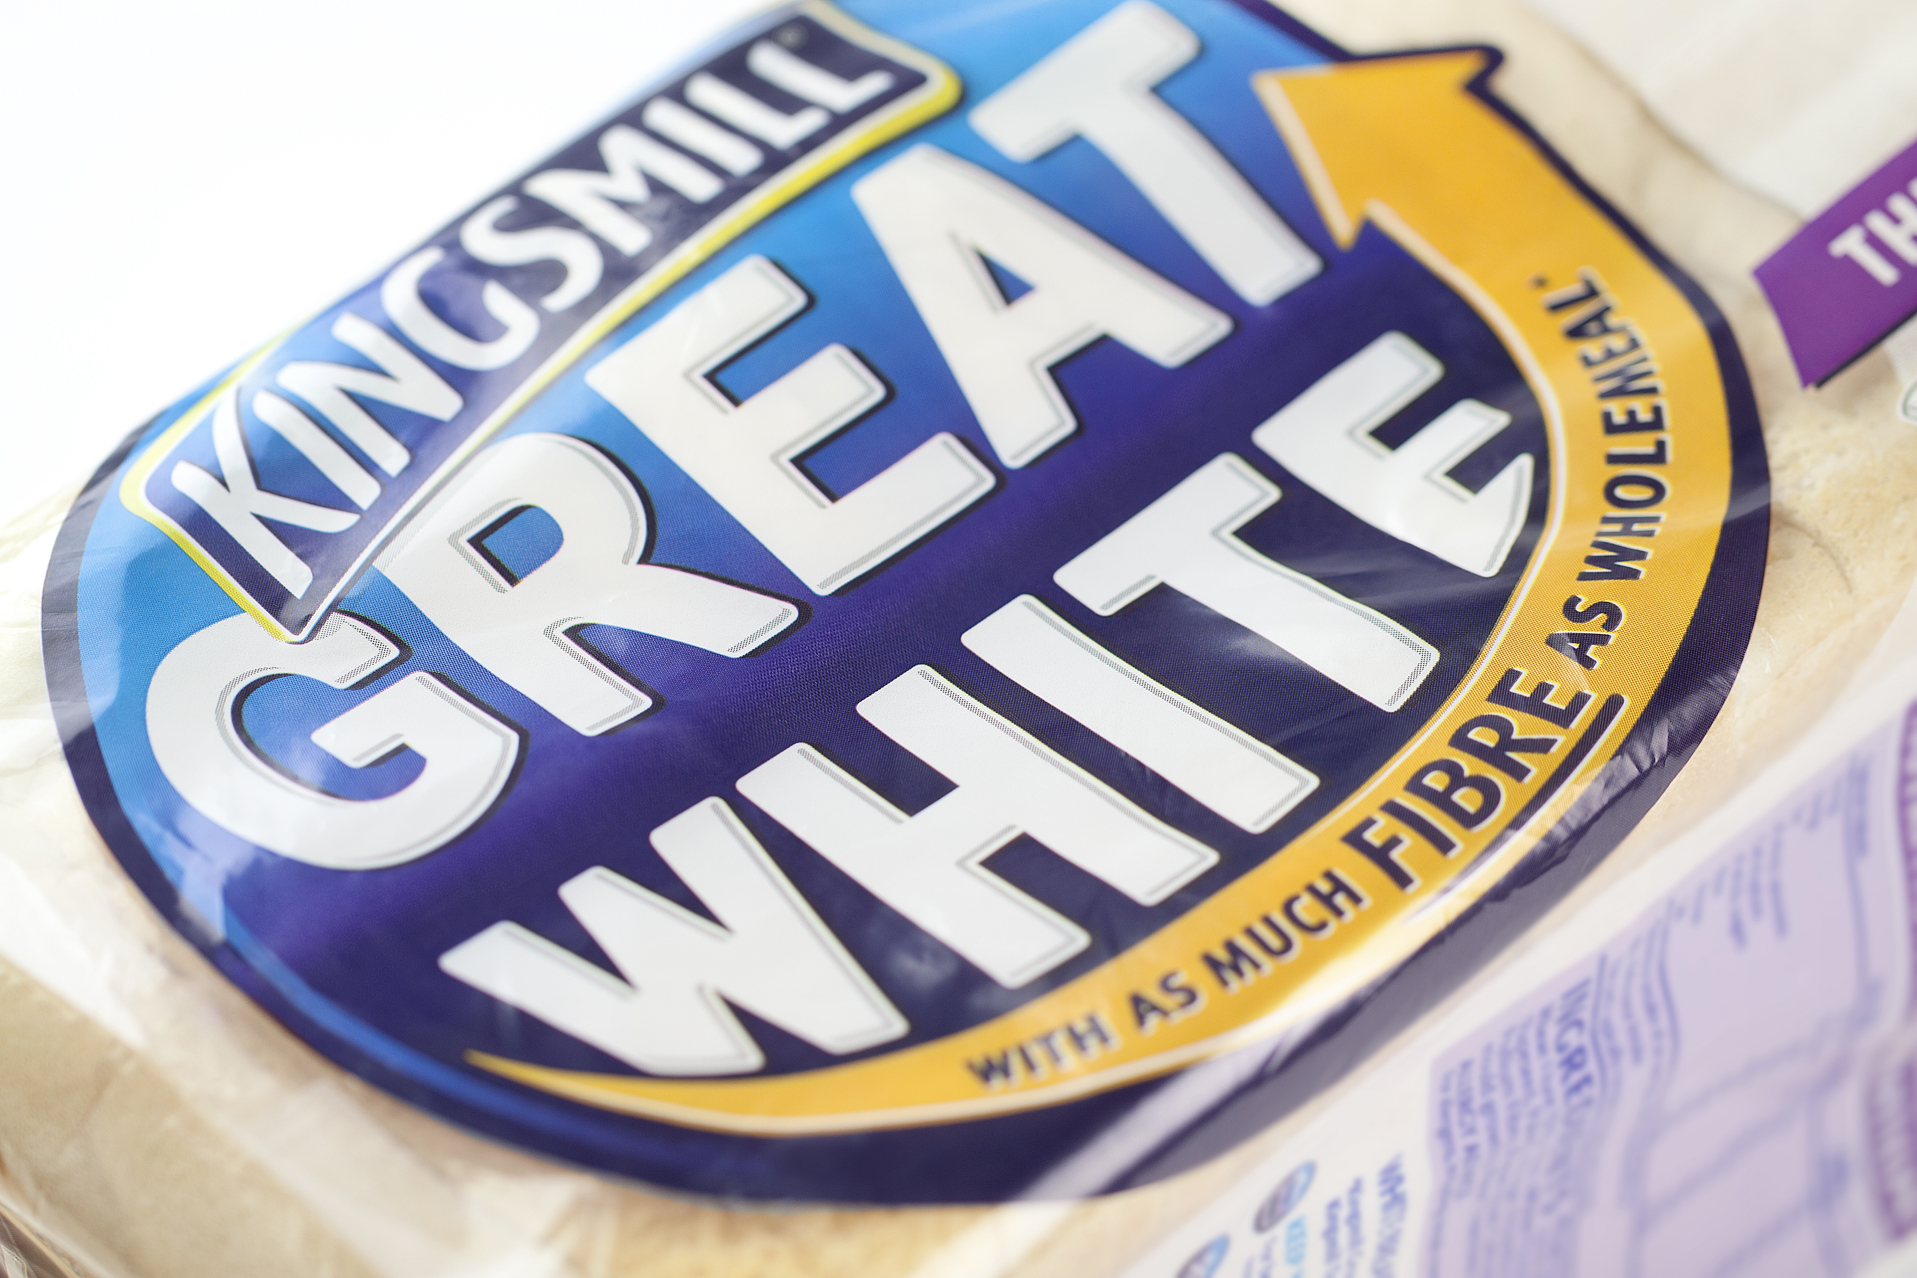 Kingsmill Great White 2